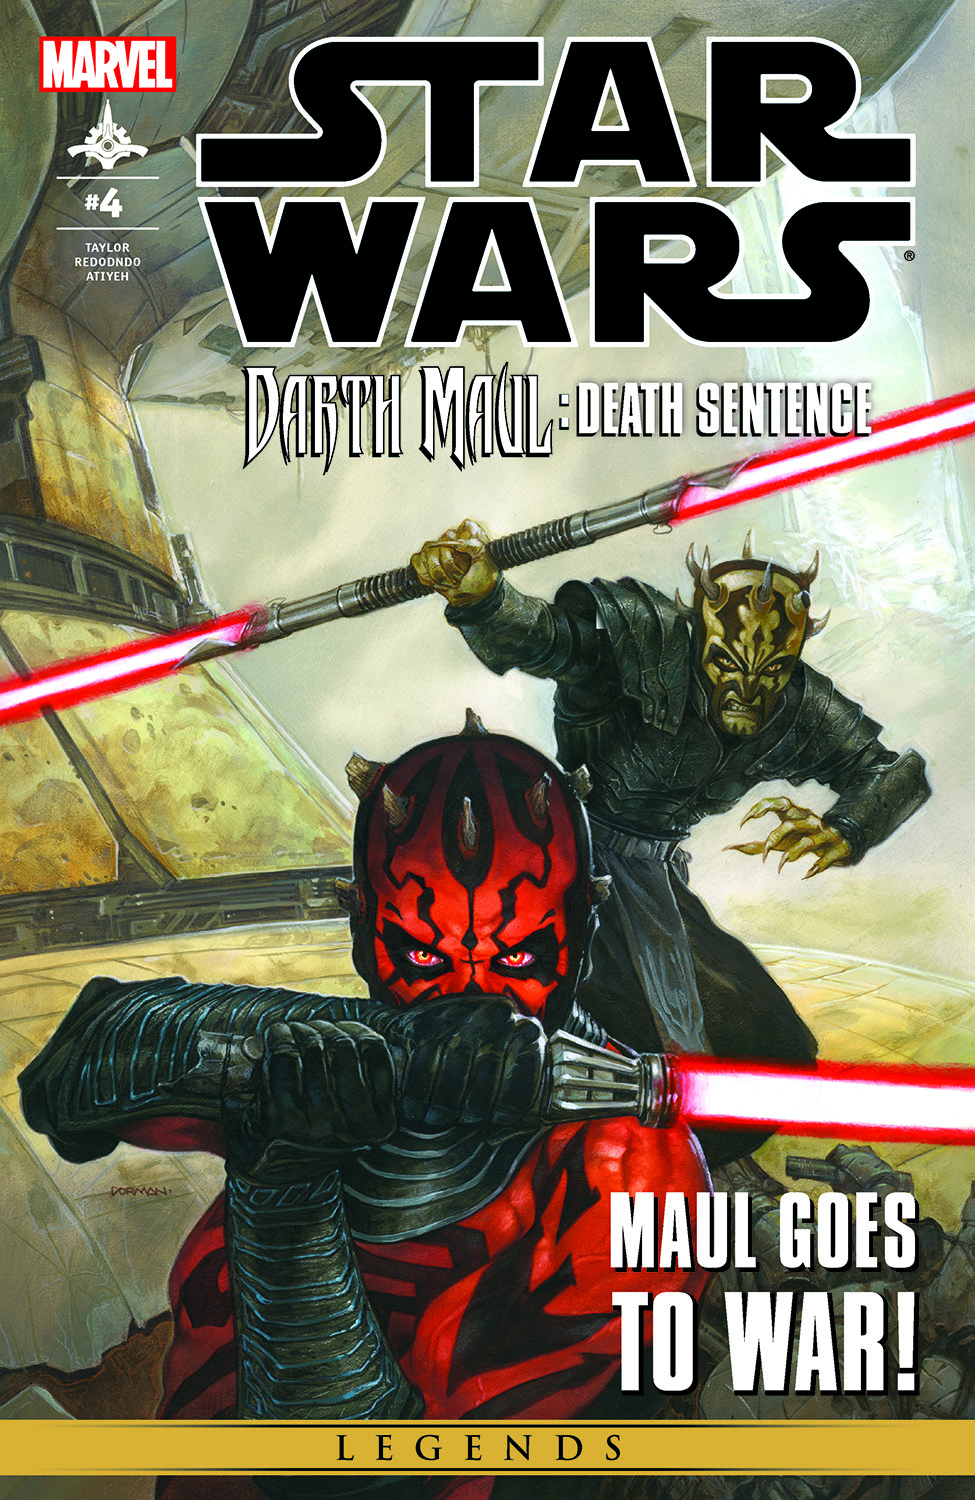 Star Wars: Darth Maul - Death Sentence (2012) #4